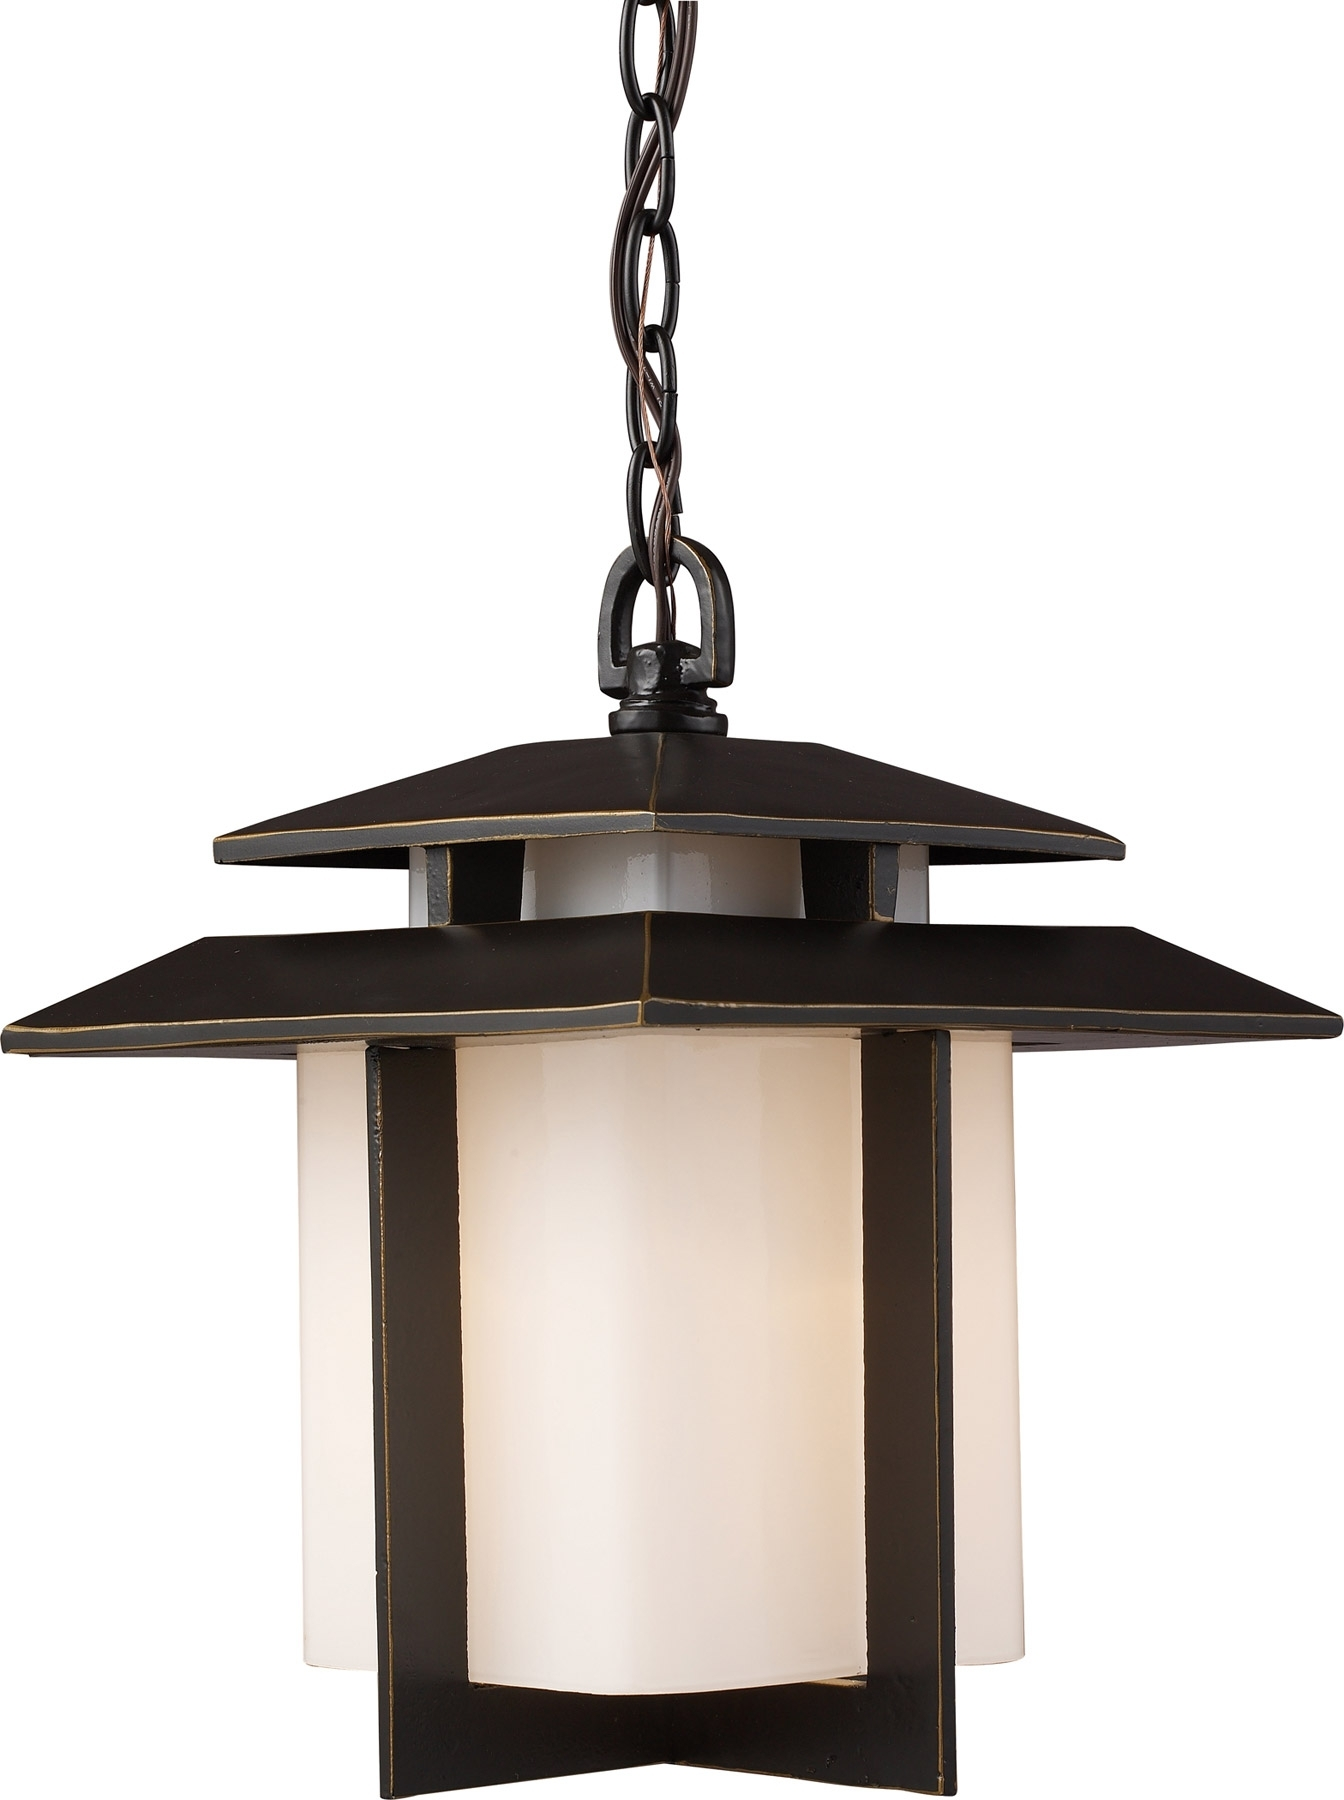 Widely Used Outdoor Lighting: Amazing Discount Outdoor Lighting Best Outdoor Pertaining To Inexpensive Outdoor Hanging Lights (View 17 of 20)